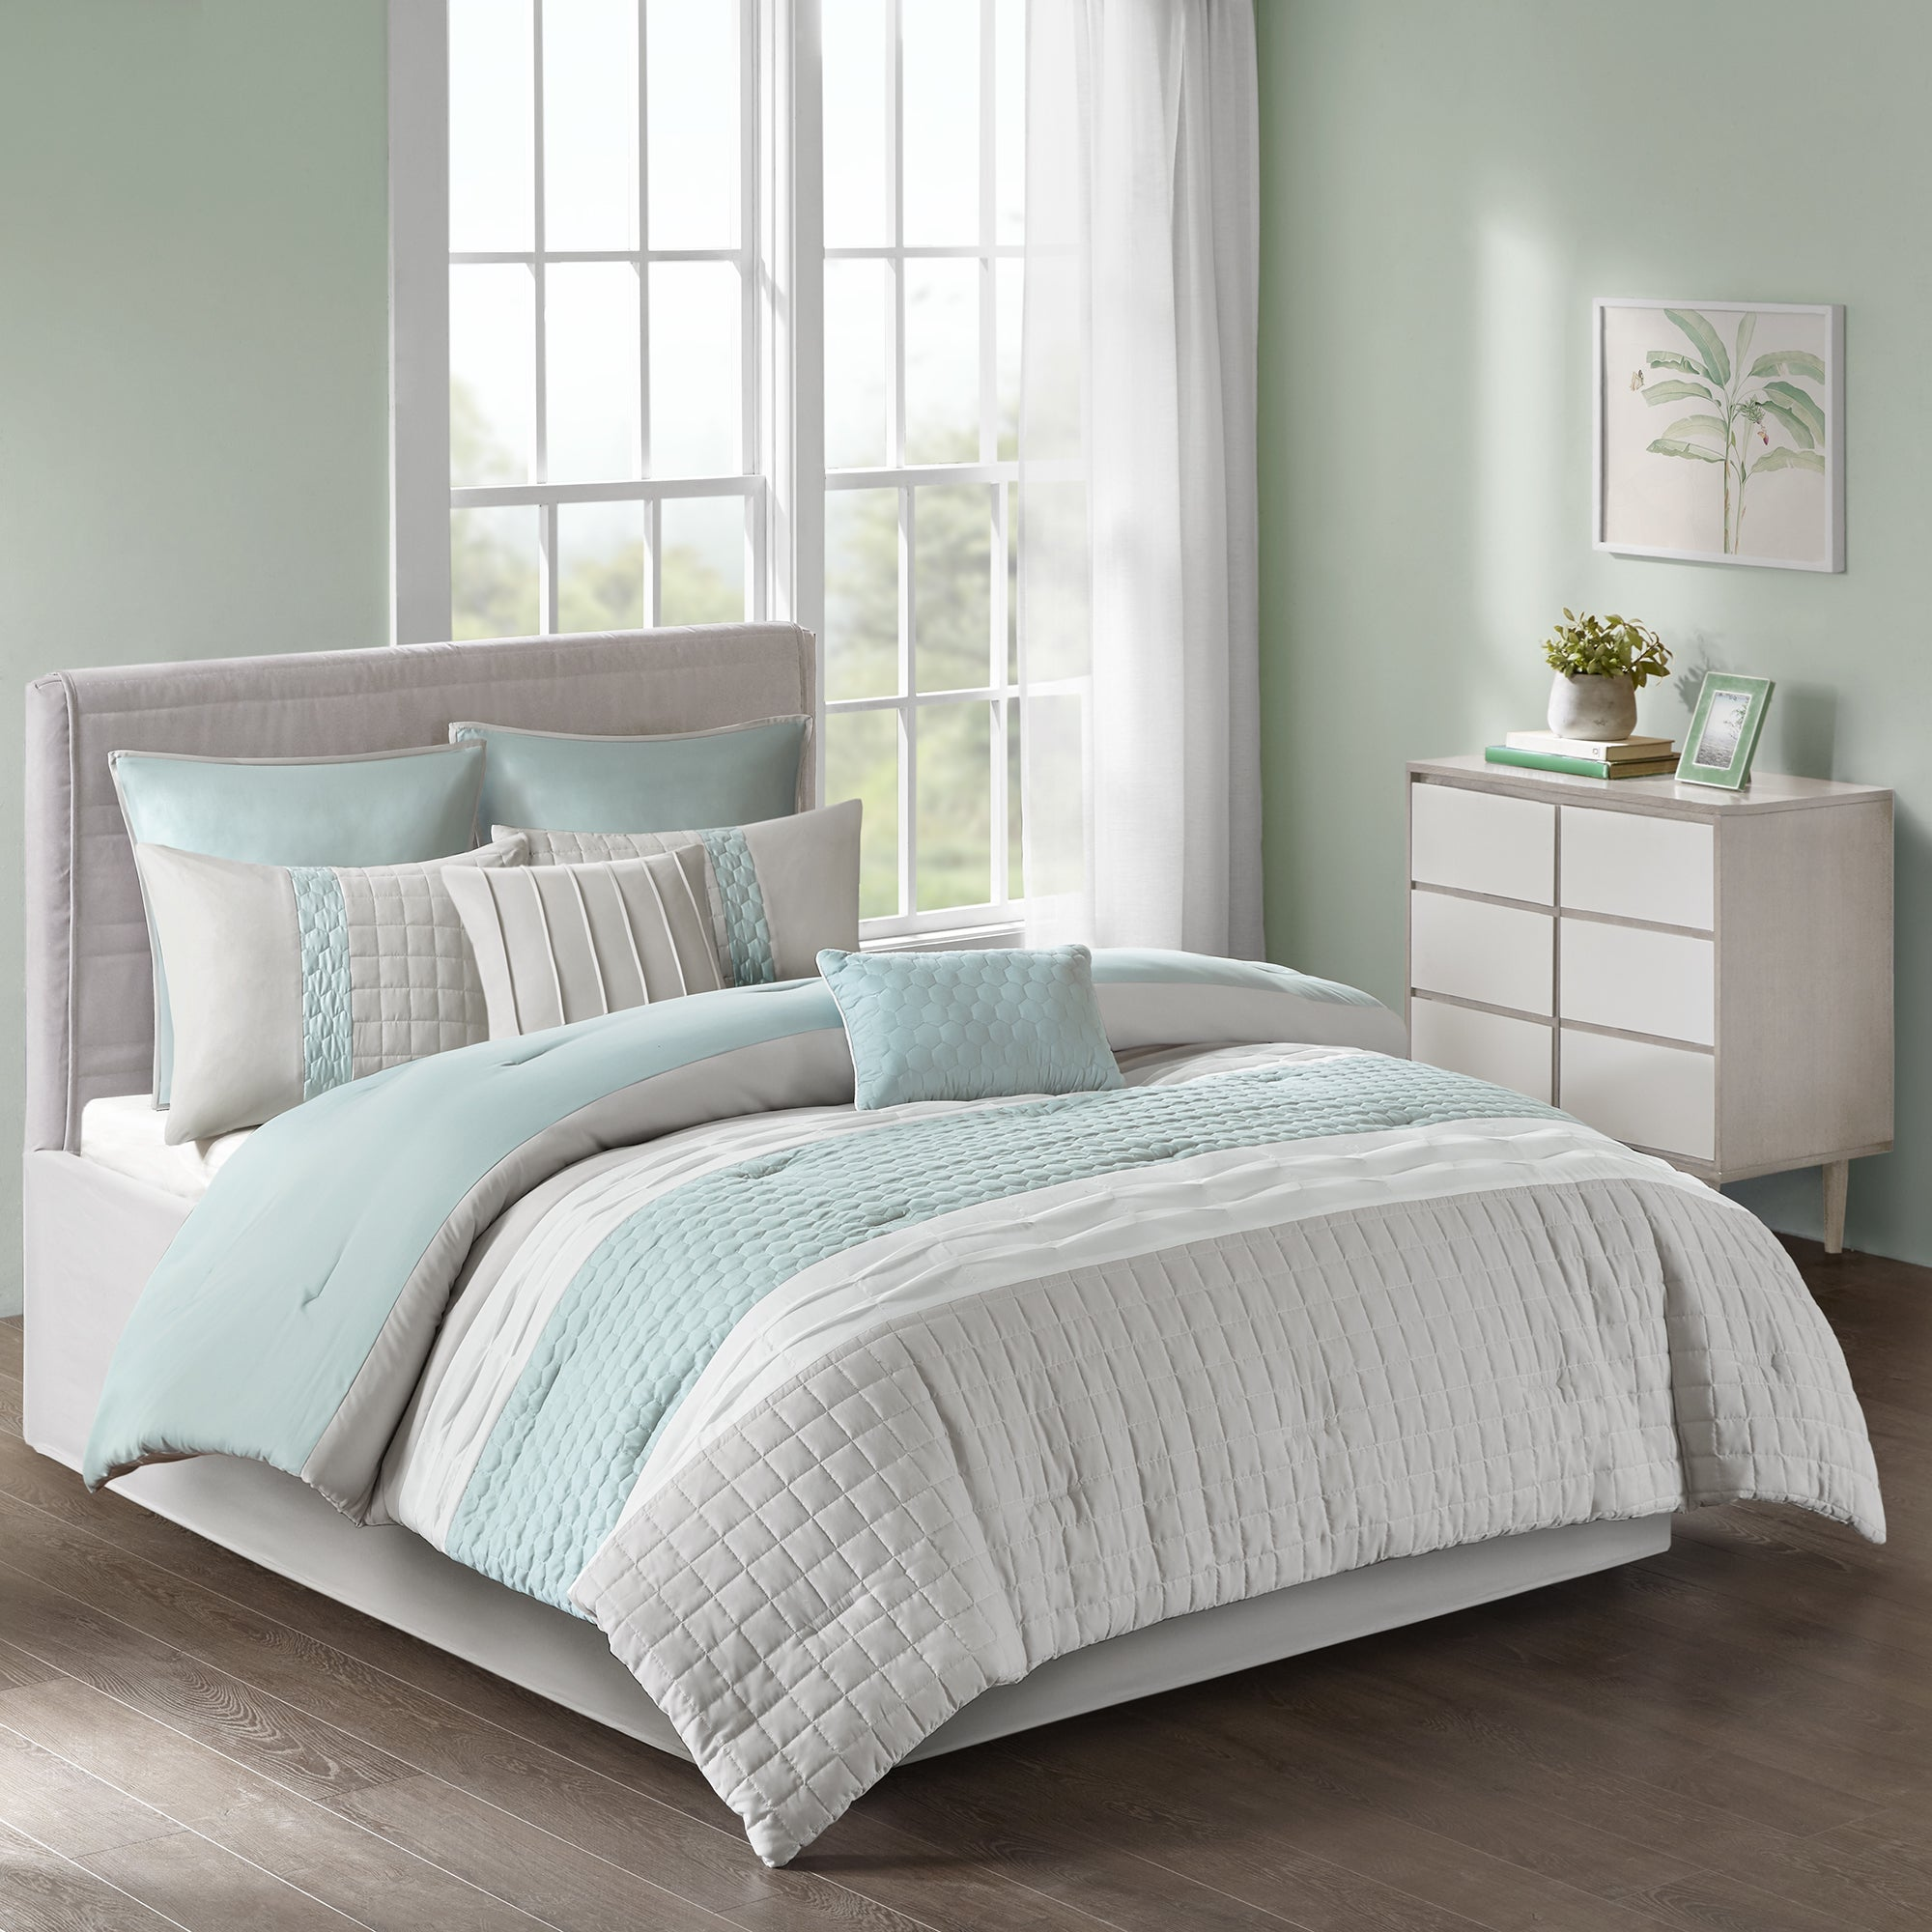 vince of interior rose quilt design gold simply chic pictures comforter set awesome pinterest hd wallpaper luxury shabby bedroom forter ideas camuto